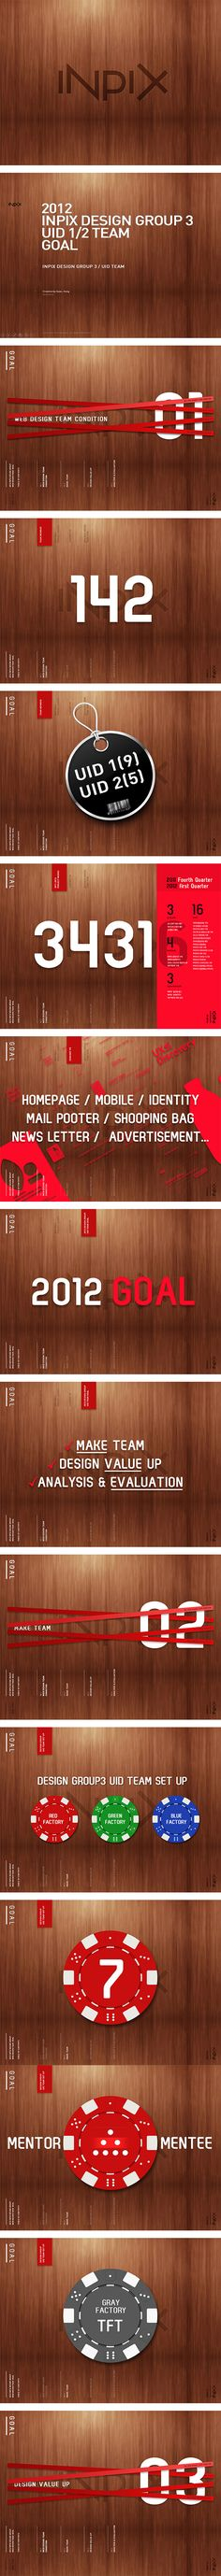 Presentation with wood grain, one color and consistent white type. There is some complex layering, but the overall style is amazing. Maybe the best designed deck I've seen. INPIX The Goal 2012! on Behance #keynote #ppt #presentation